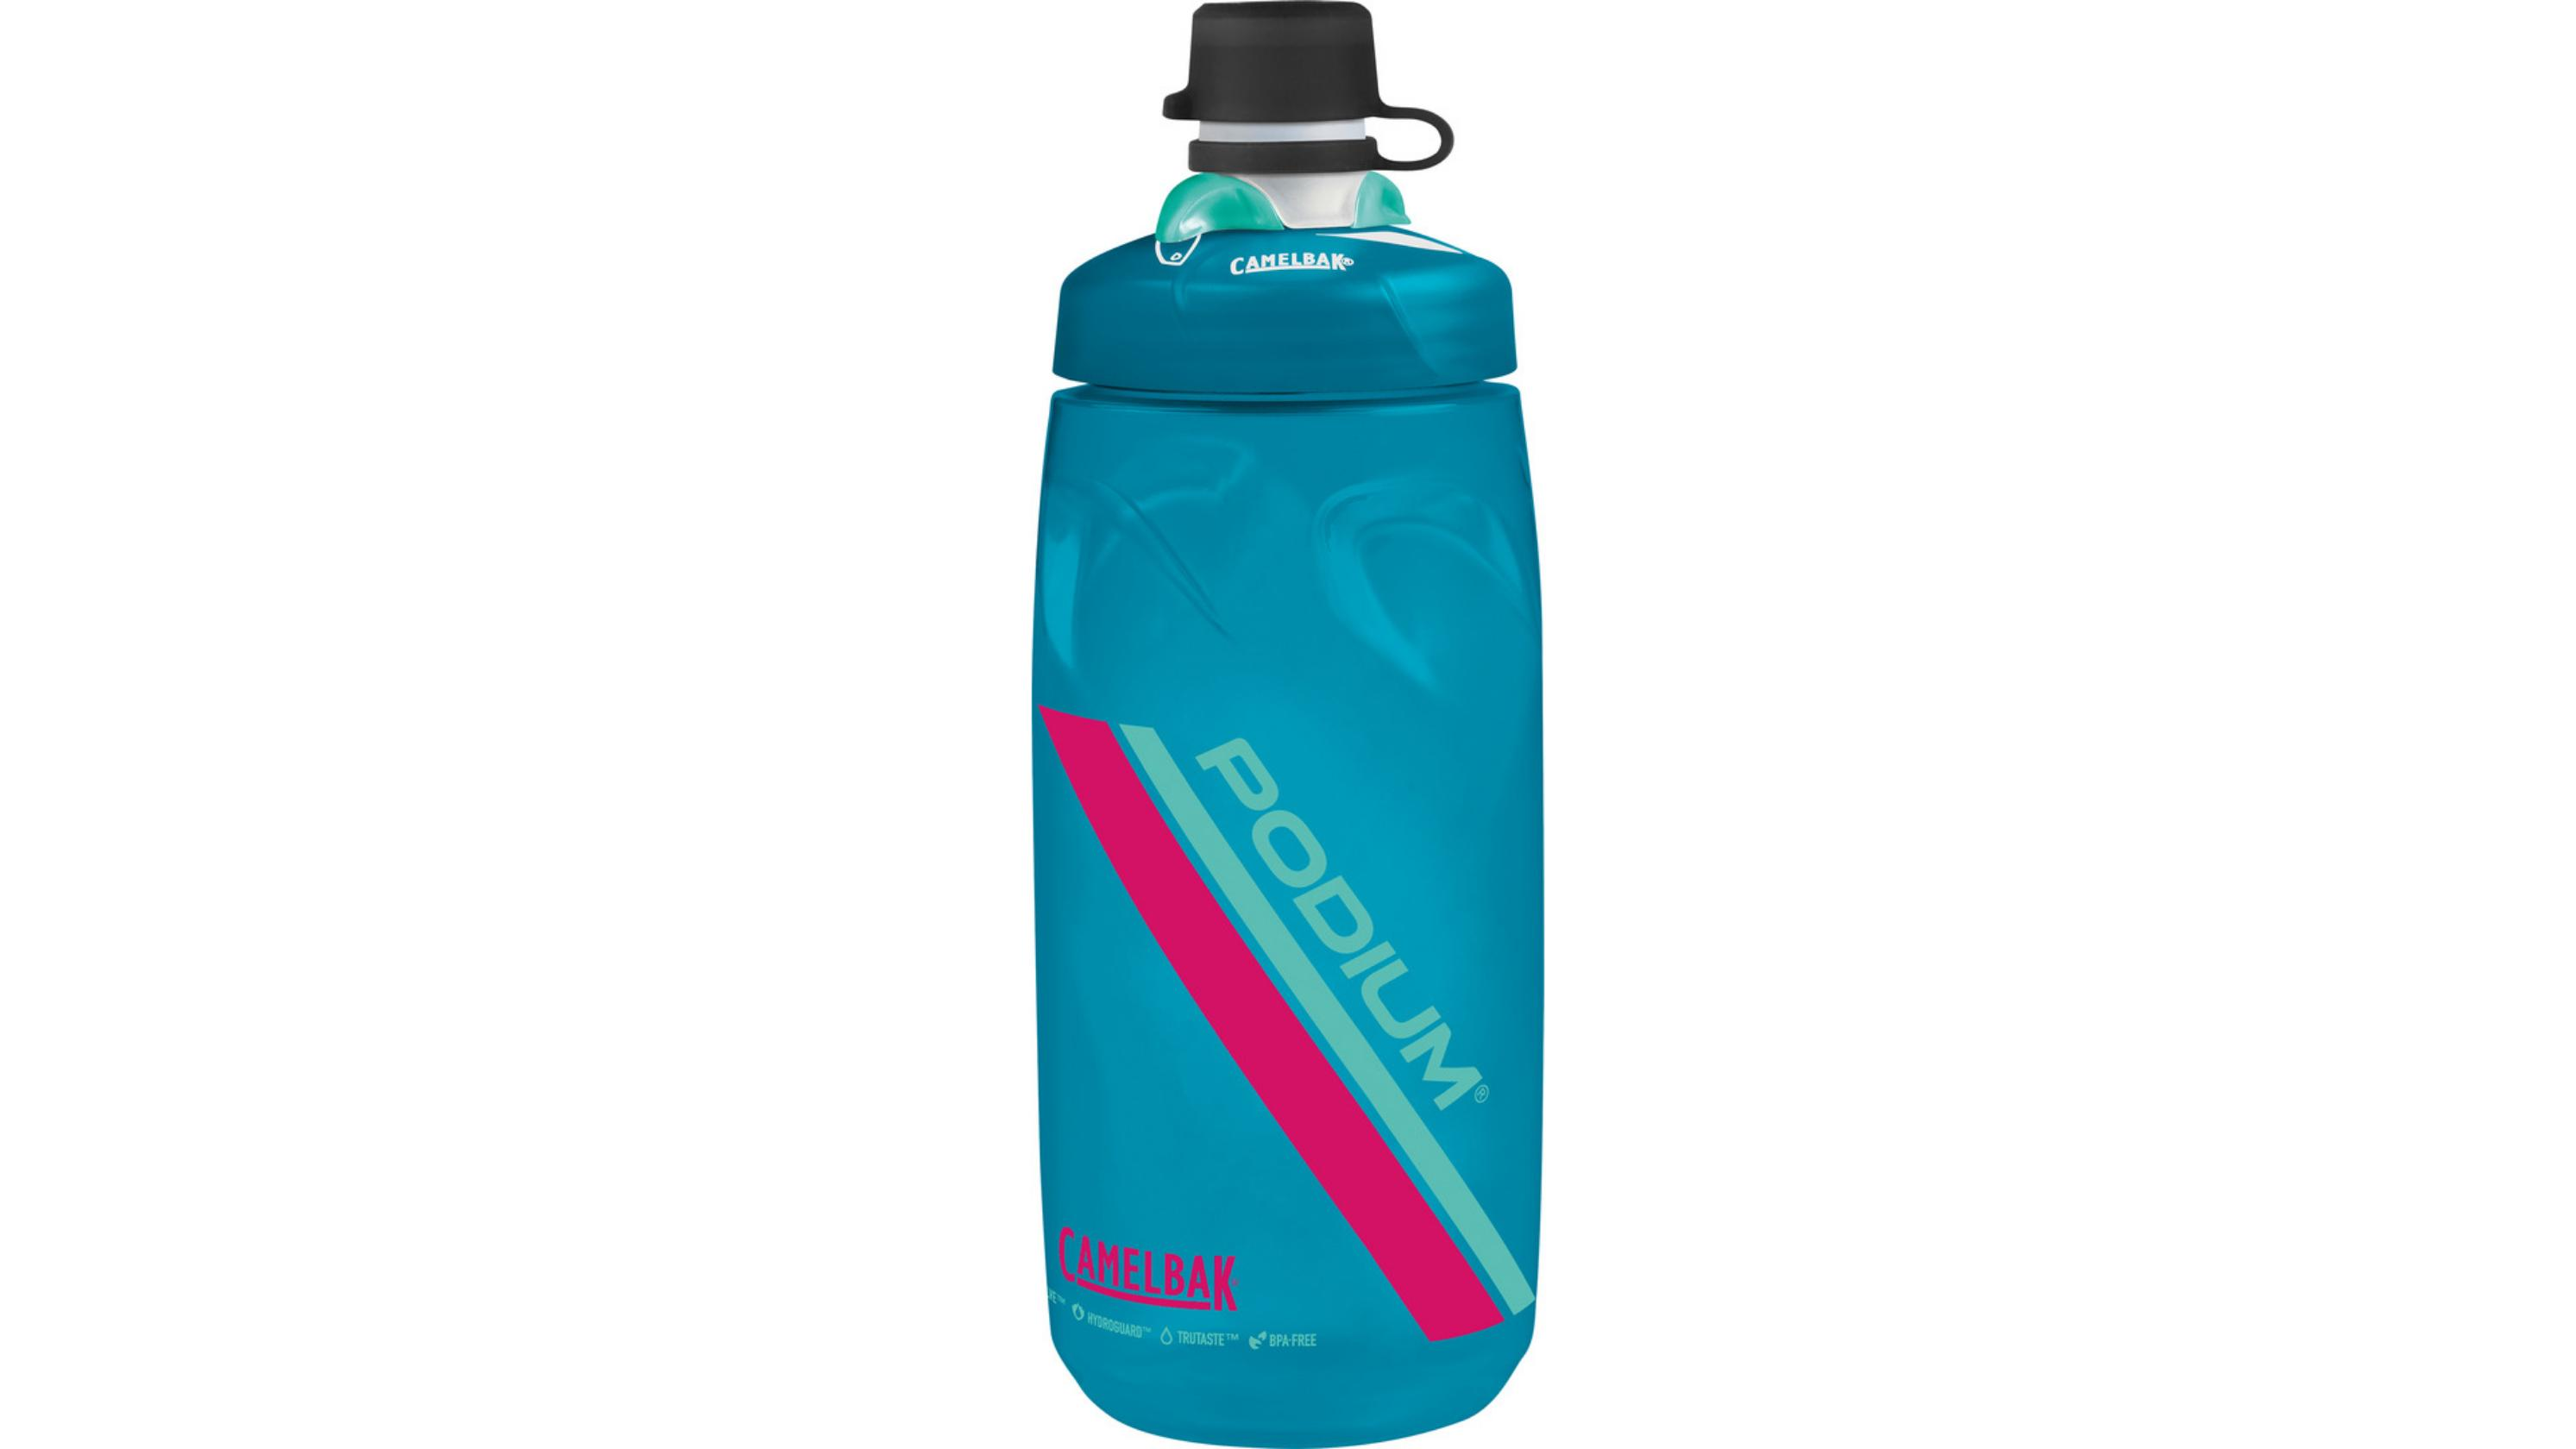 CAMELBAK Trinkflasche Podium Dirt Series ab 2018 - Farbe: Teal